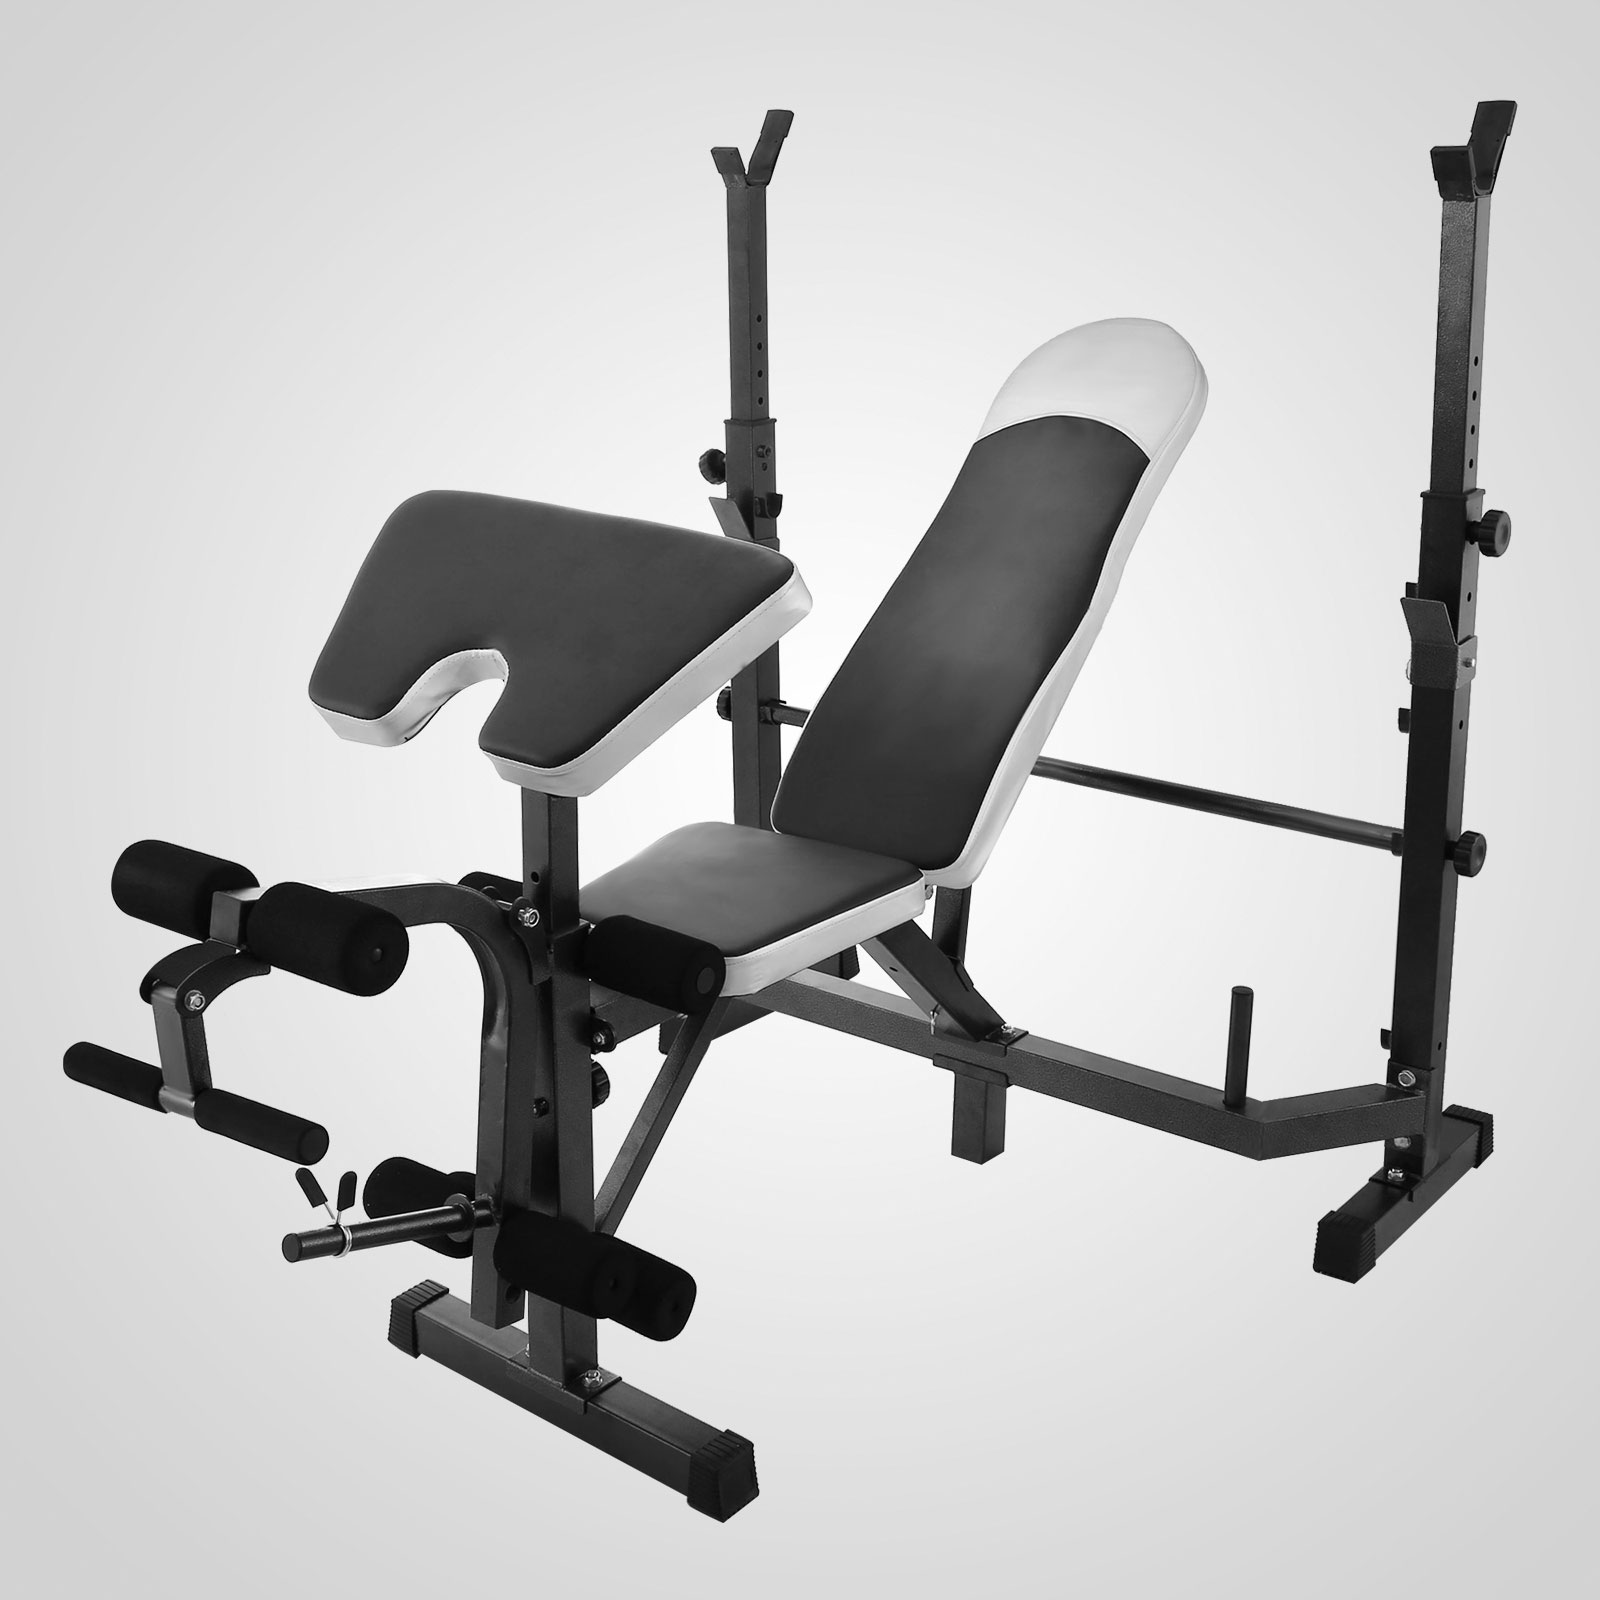 Home Gym Bench Set: Lifting Bench Strength Training Adjustable Rack W/ Weight